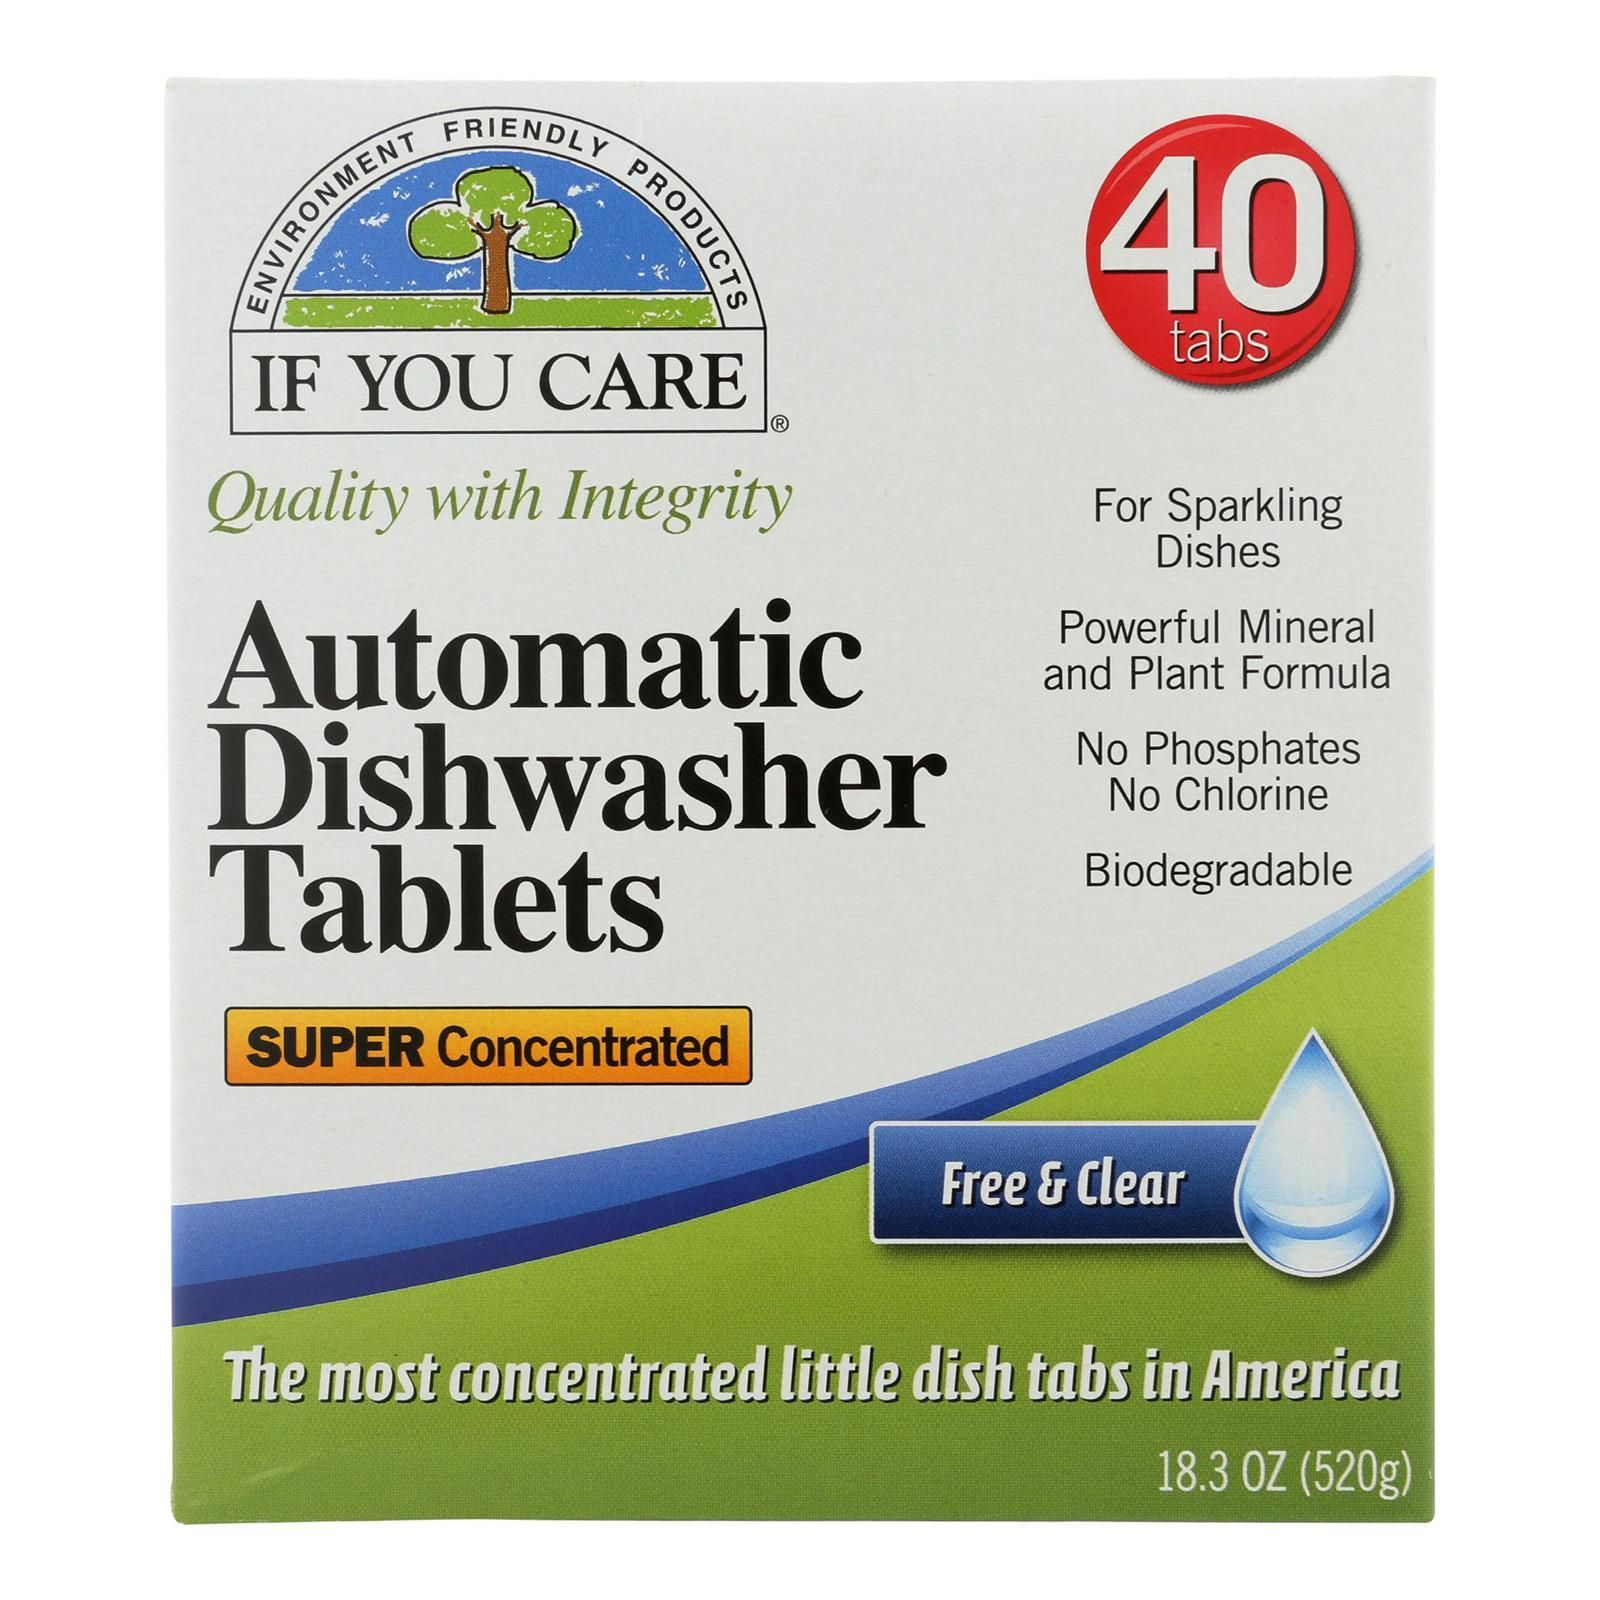 If You Care Automatic Dishwasher Tabs 40 Count Case Of 8 Dishwasher Tabs Dishwasher Tablets Biodegradable Products